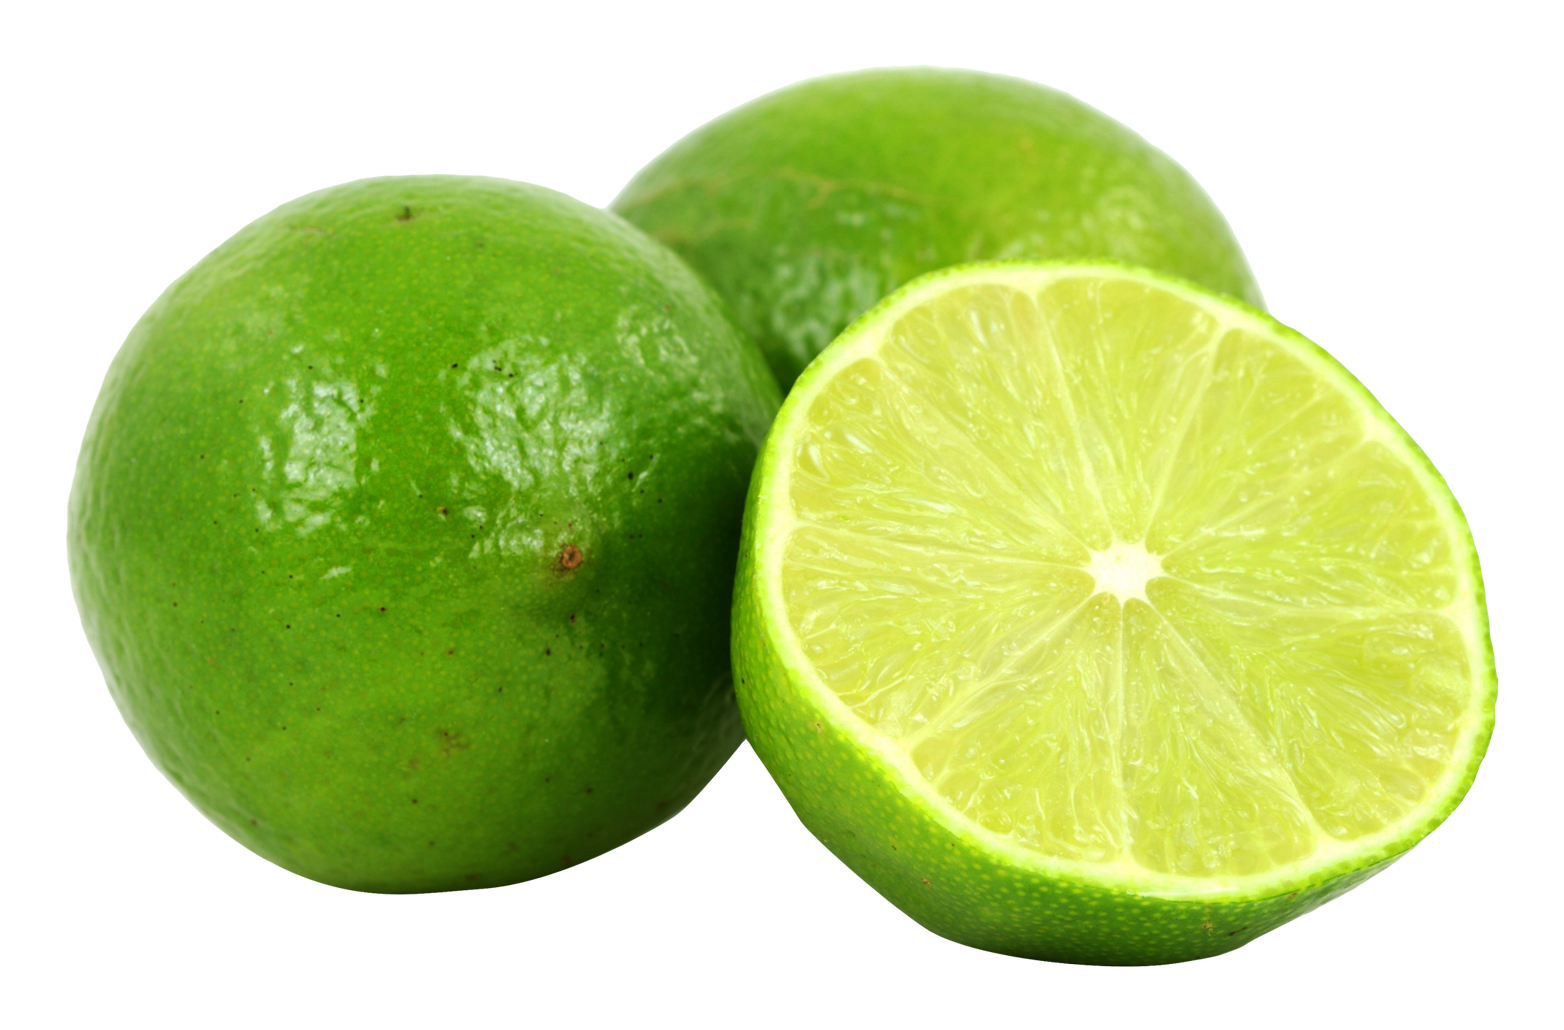 Png image no background. Lime transparent mart